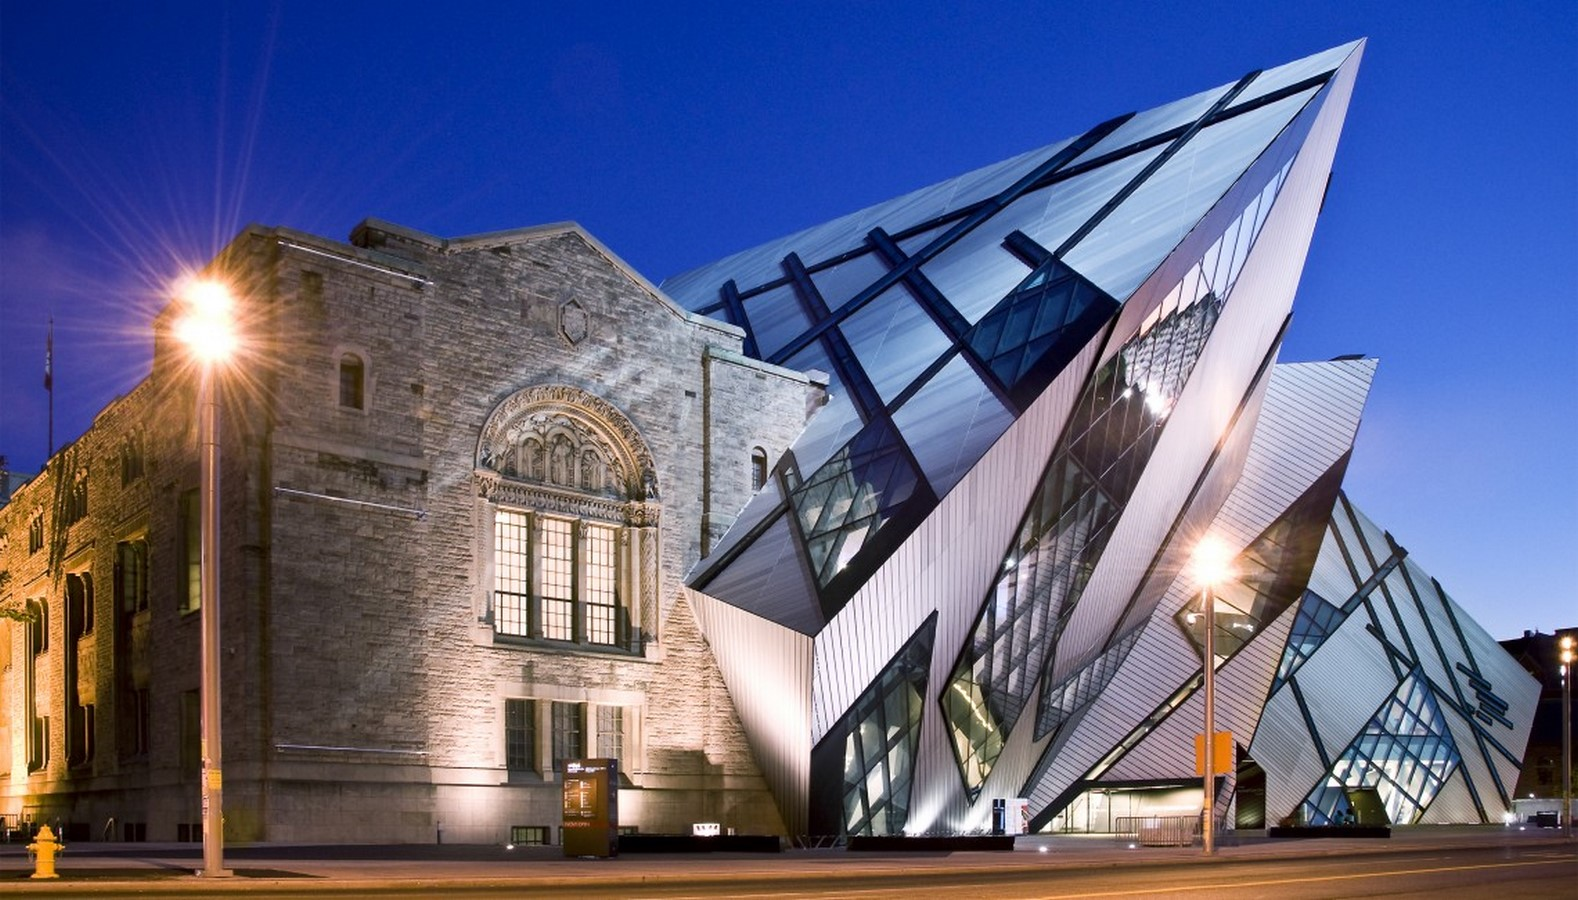 Royal Ontario Museum by Daniel Libeskind: The modern Crystal - Sheet12